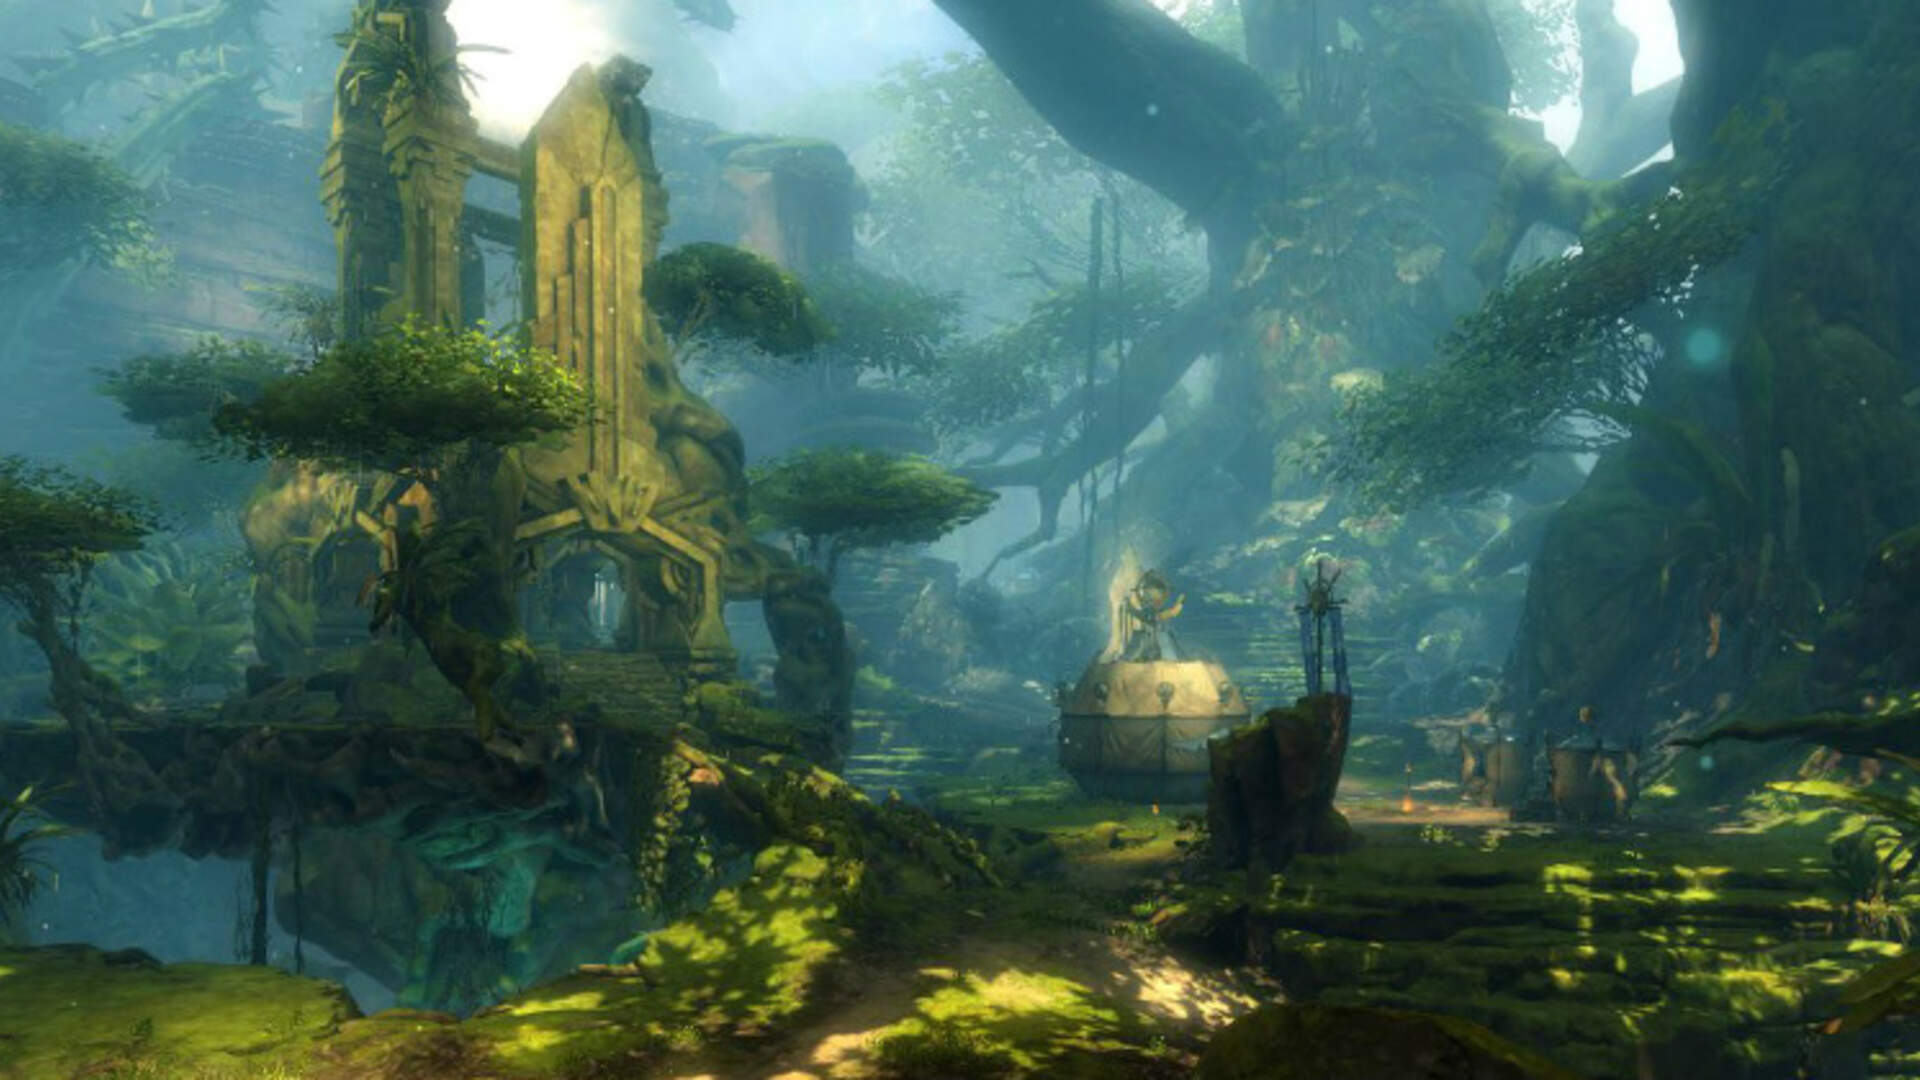 Guild Wars 2 is Free This Weekend. You Should Play It.